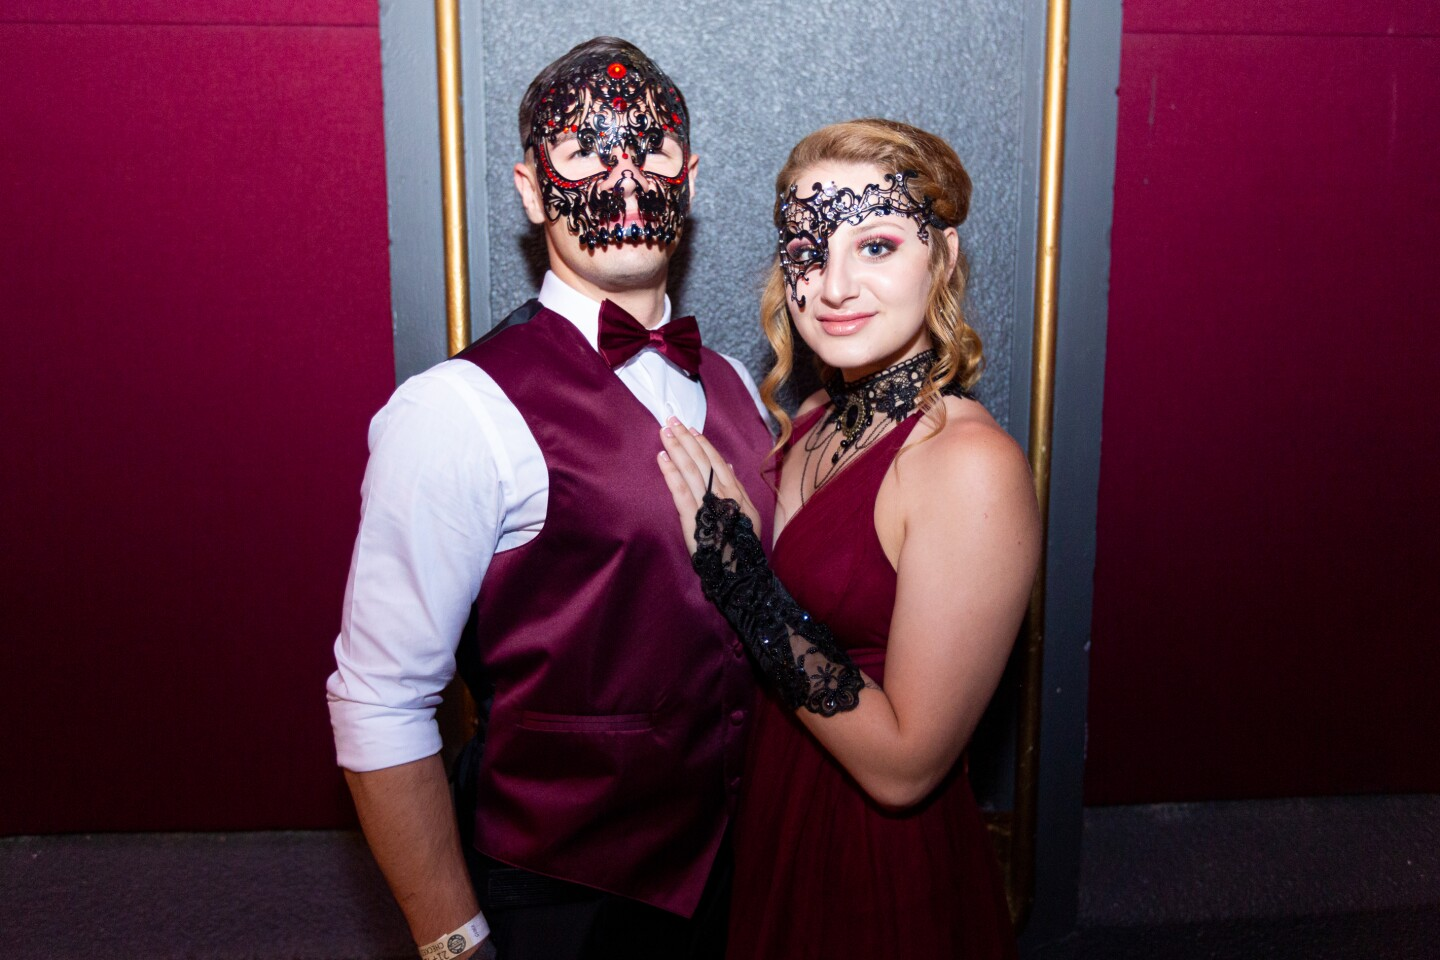 Guests at A Midsummer Masquerade Ball: French Follies donned masks for an opulent night of live entertainment at The Observatory North Park on July 27, 2019.